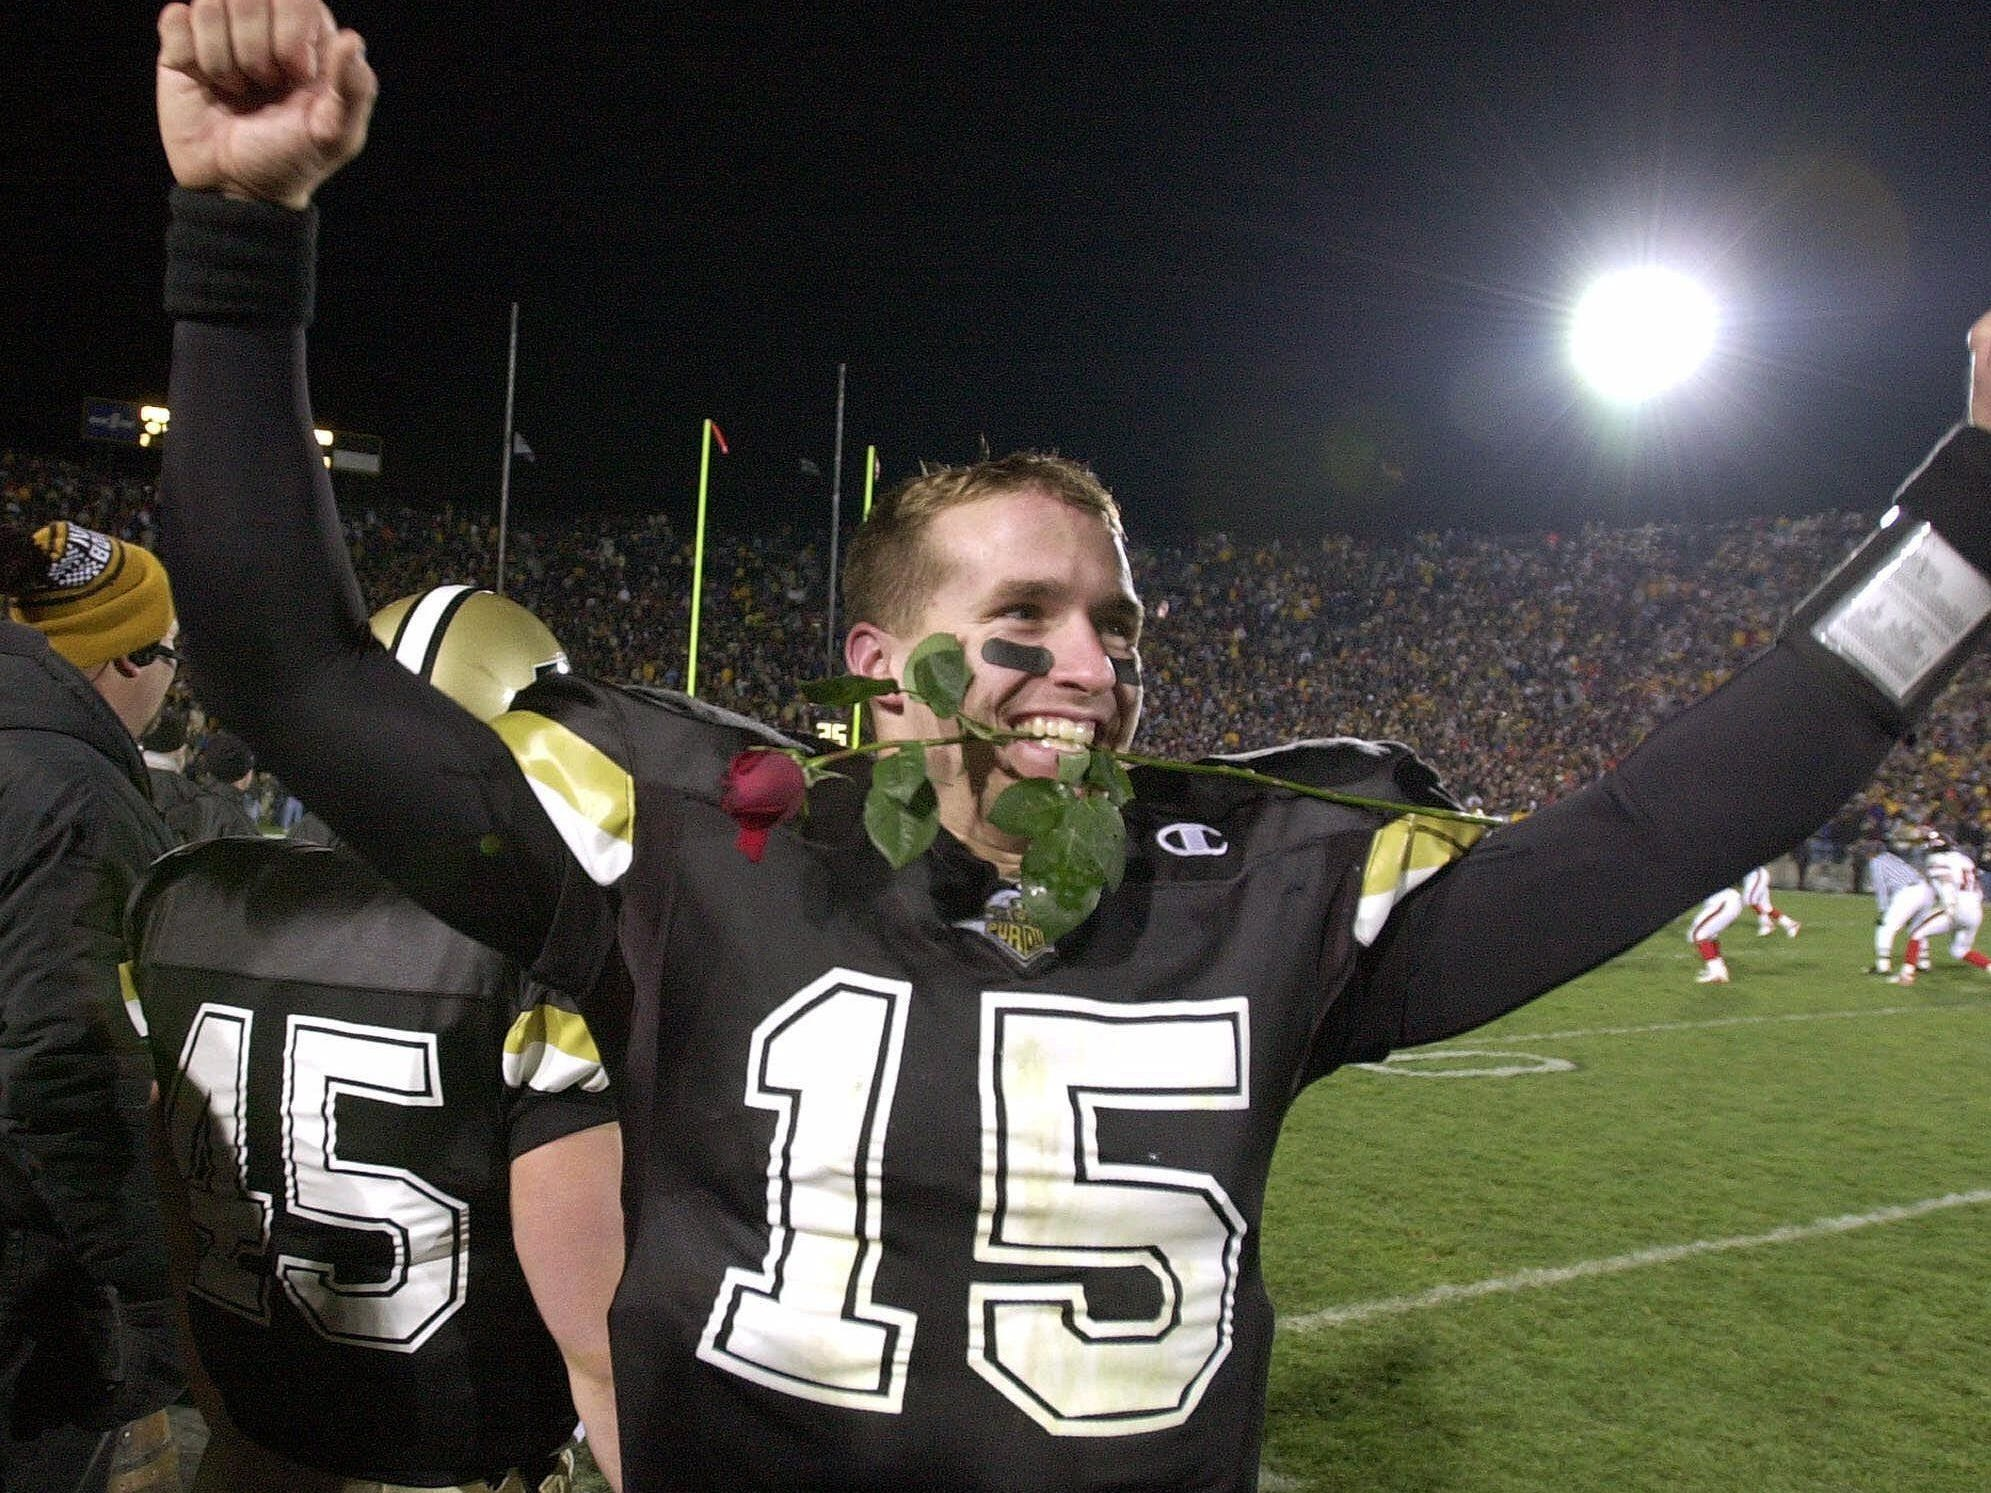 2000: Brees clenched a rose in his teeth on Nov. 18 as he celebrated a 43-14 win over Indiana. The victory earned Purdue an invitation to the Rose Bowl.